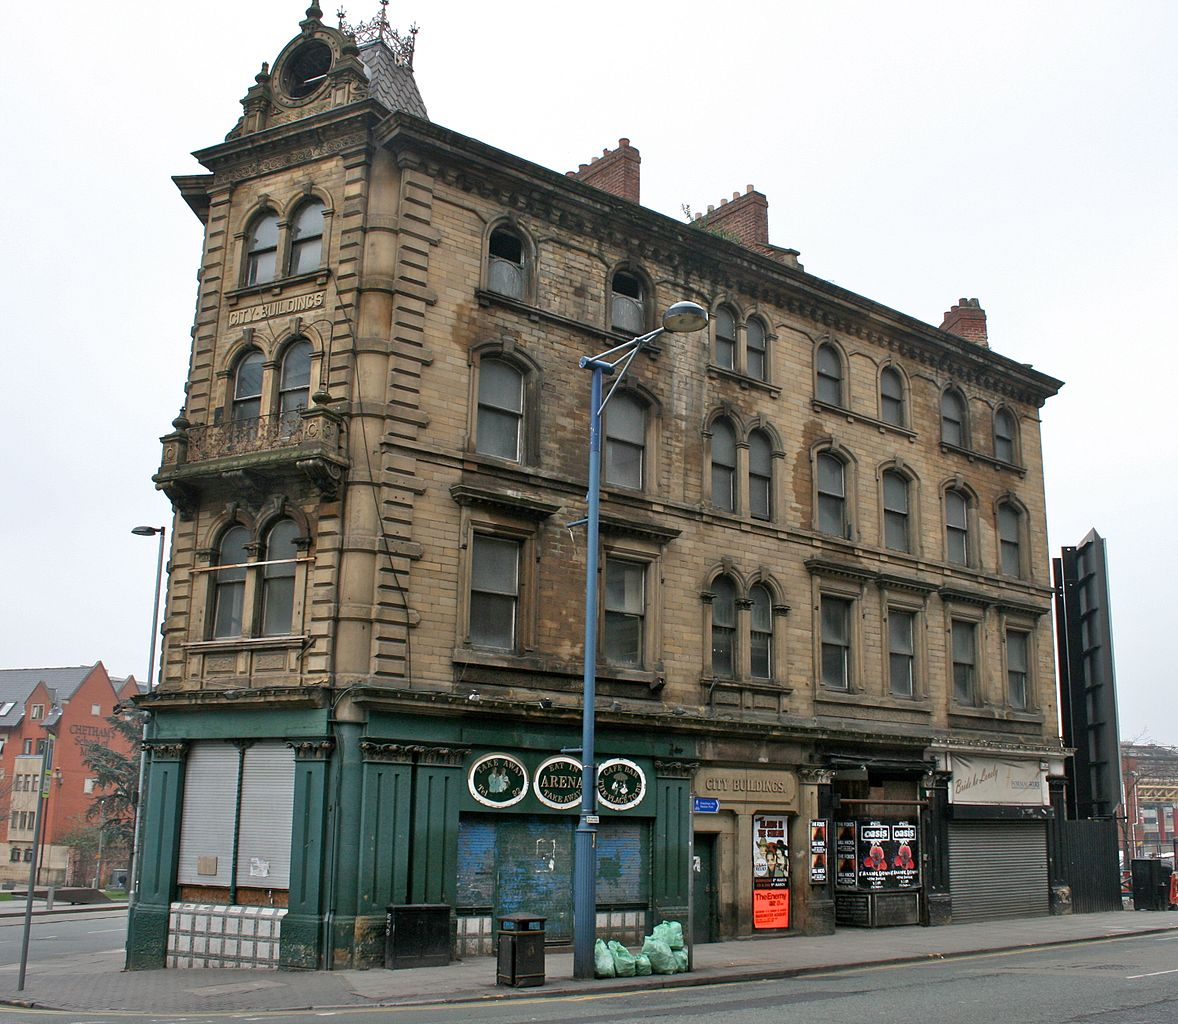 FileCity Buildings Manchesterjpg  Wikimedia Commons